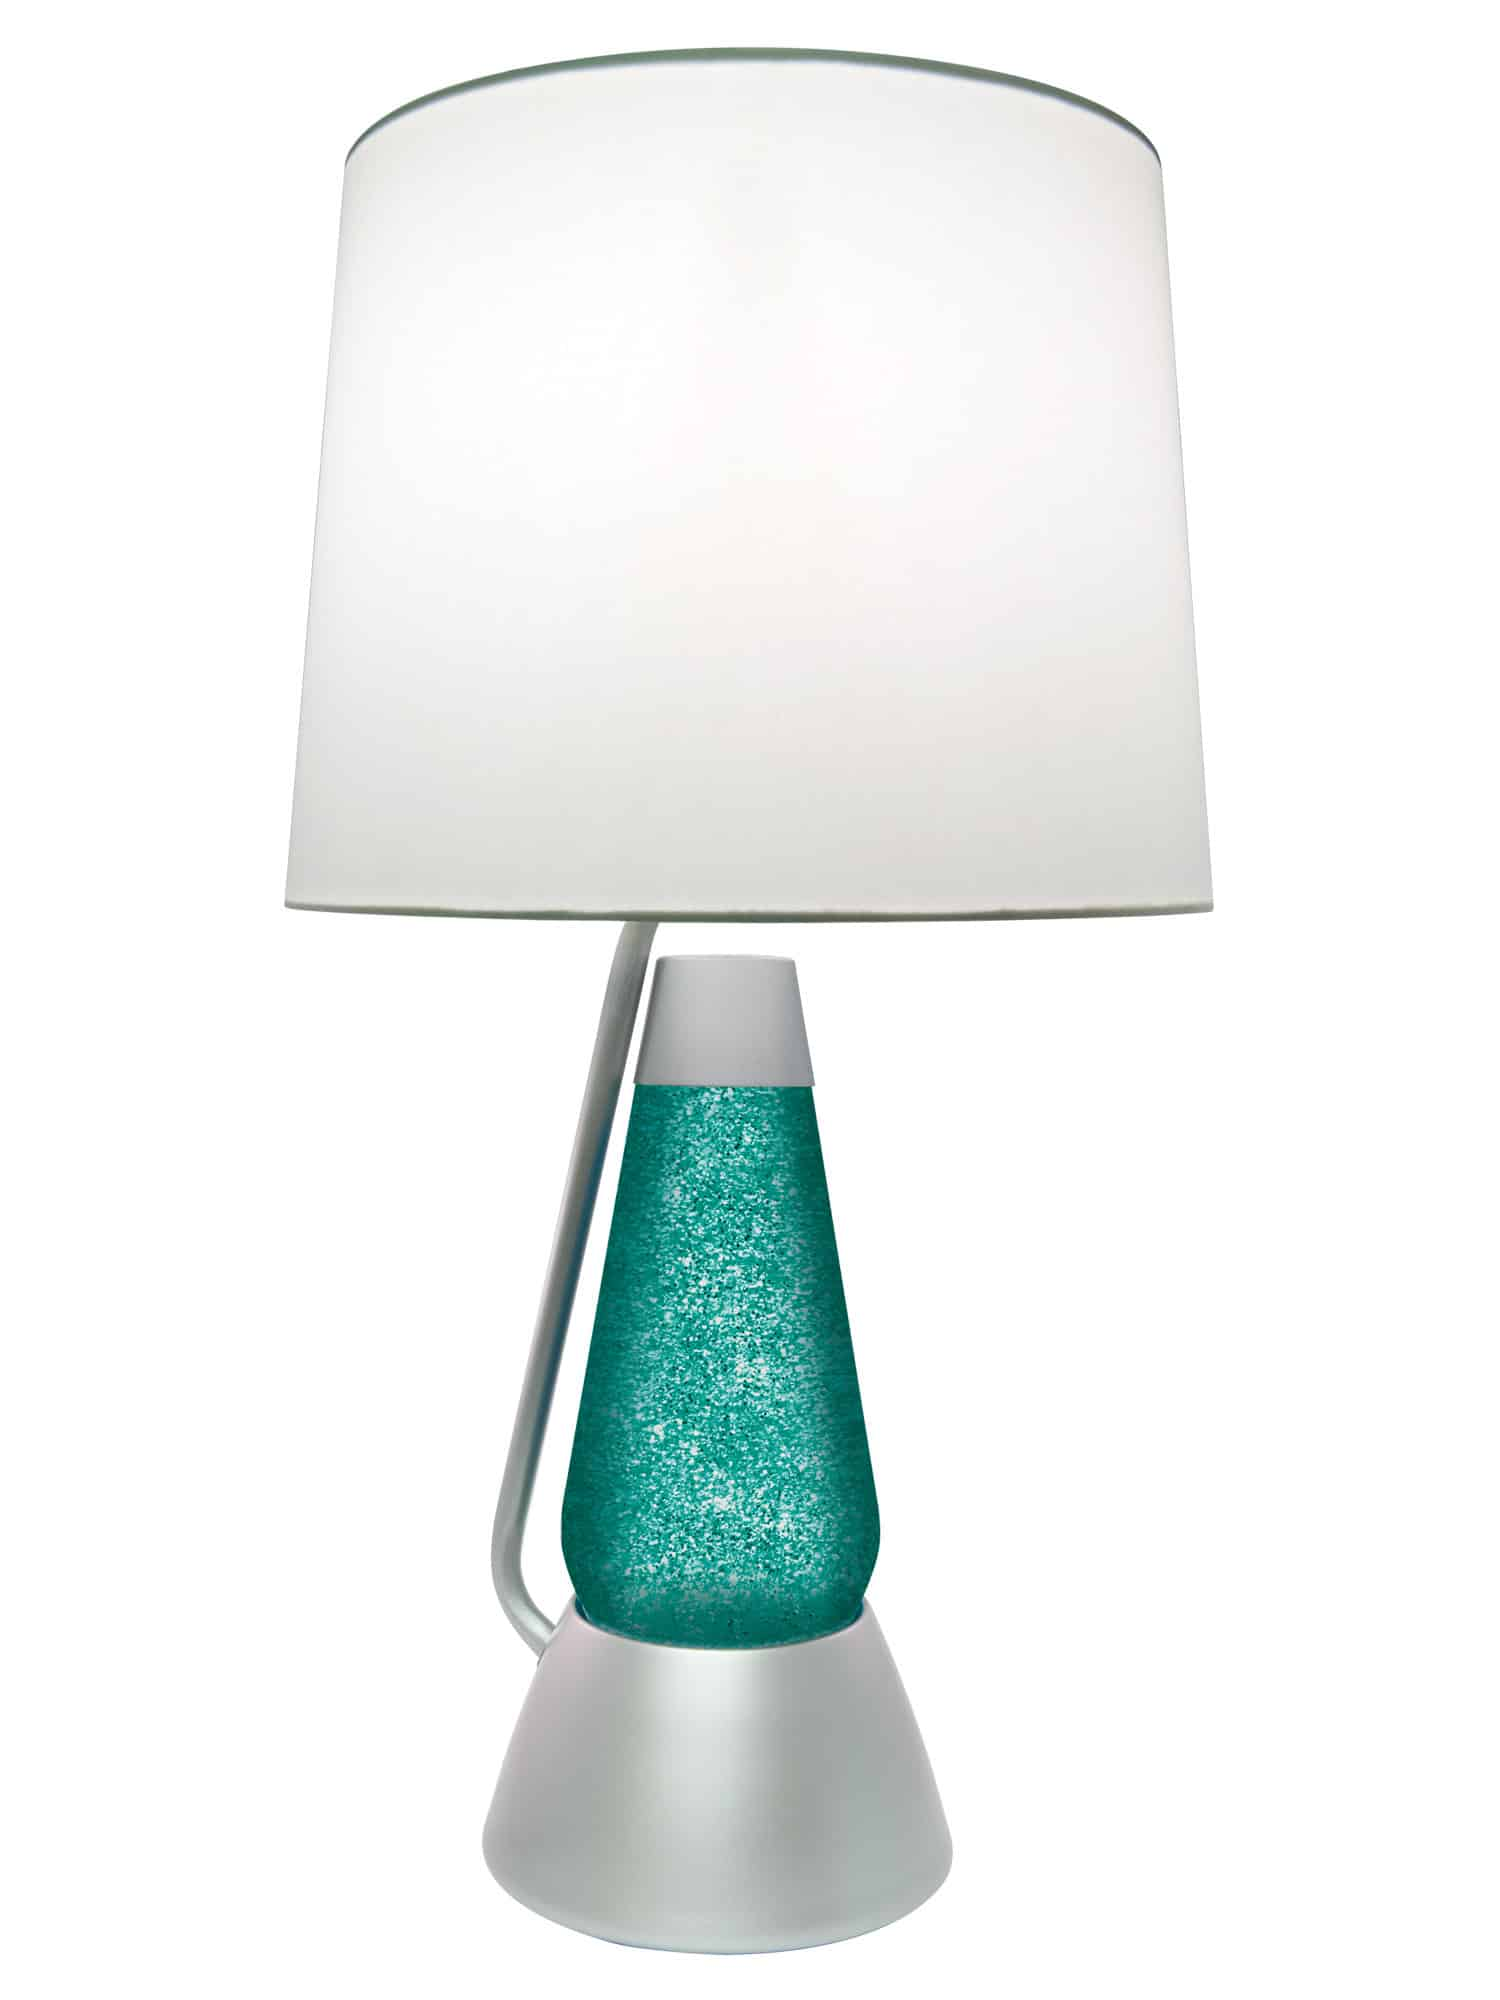 Liquid Lamp 3116 Silver Glitter With Teal Liquid Motion Lamp Lava Lamp